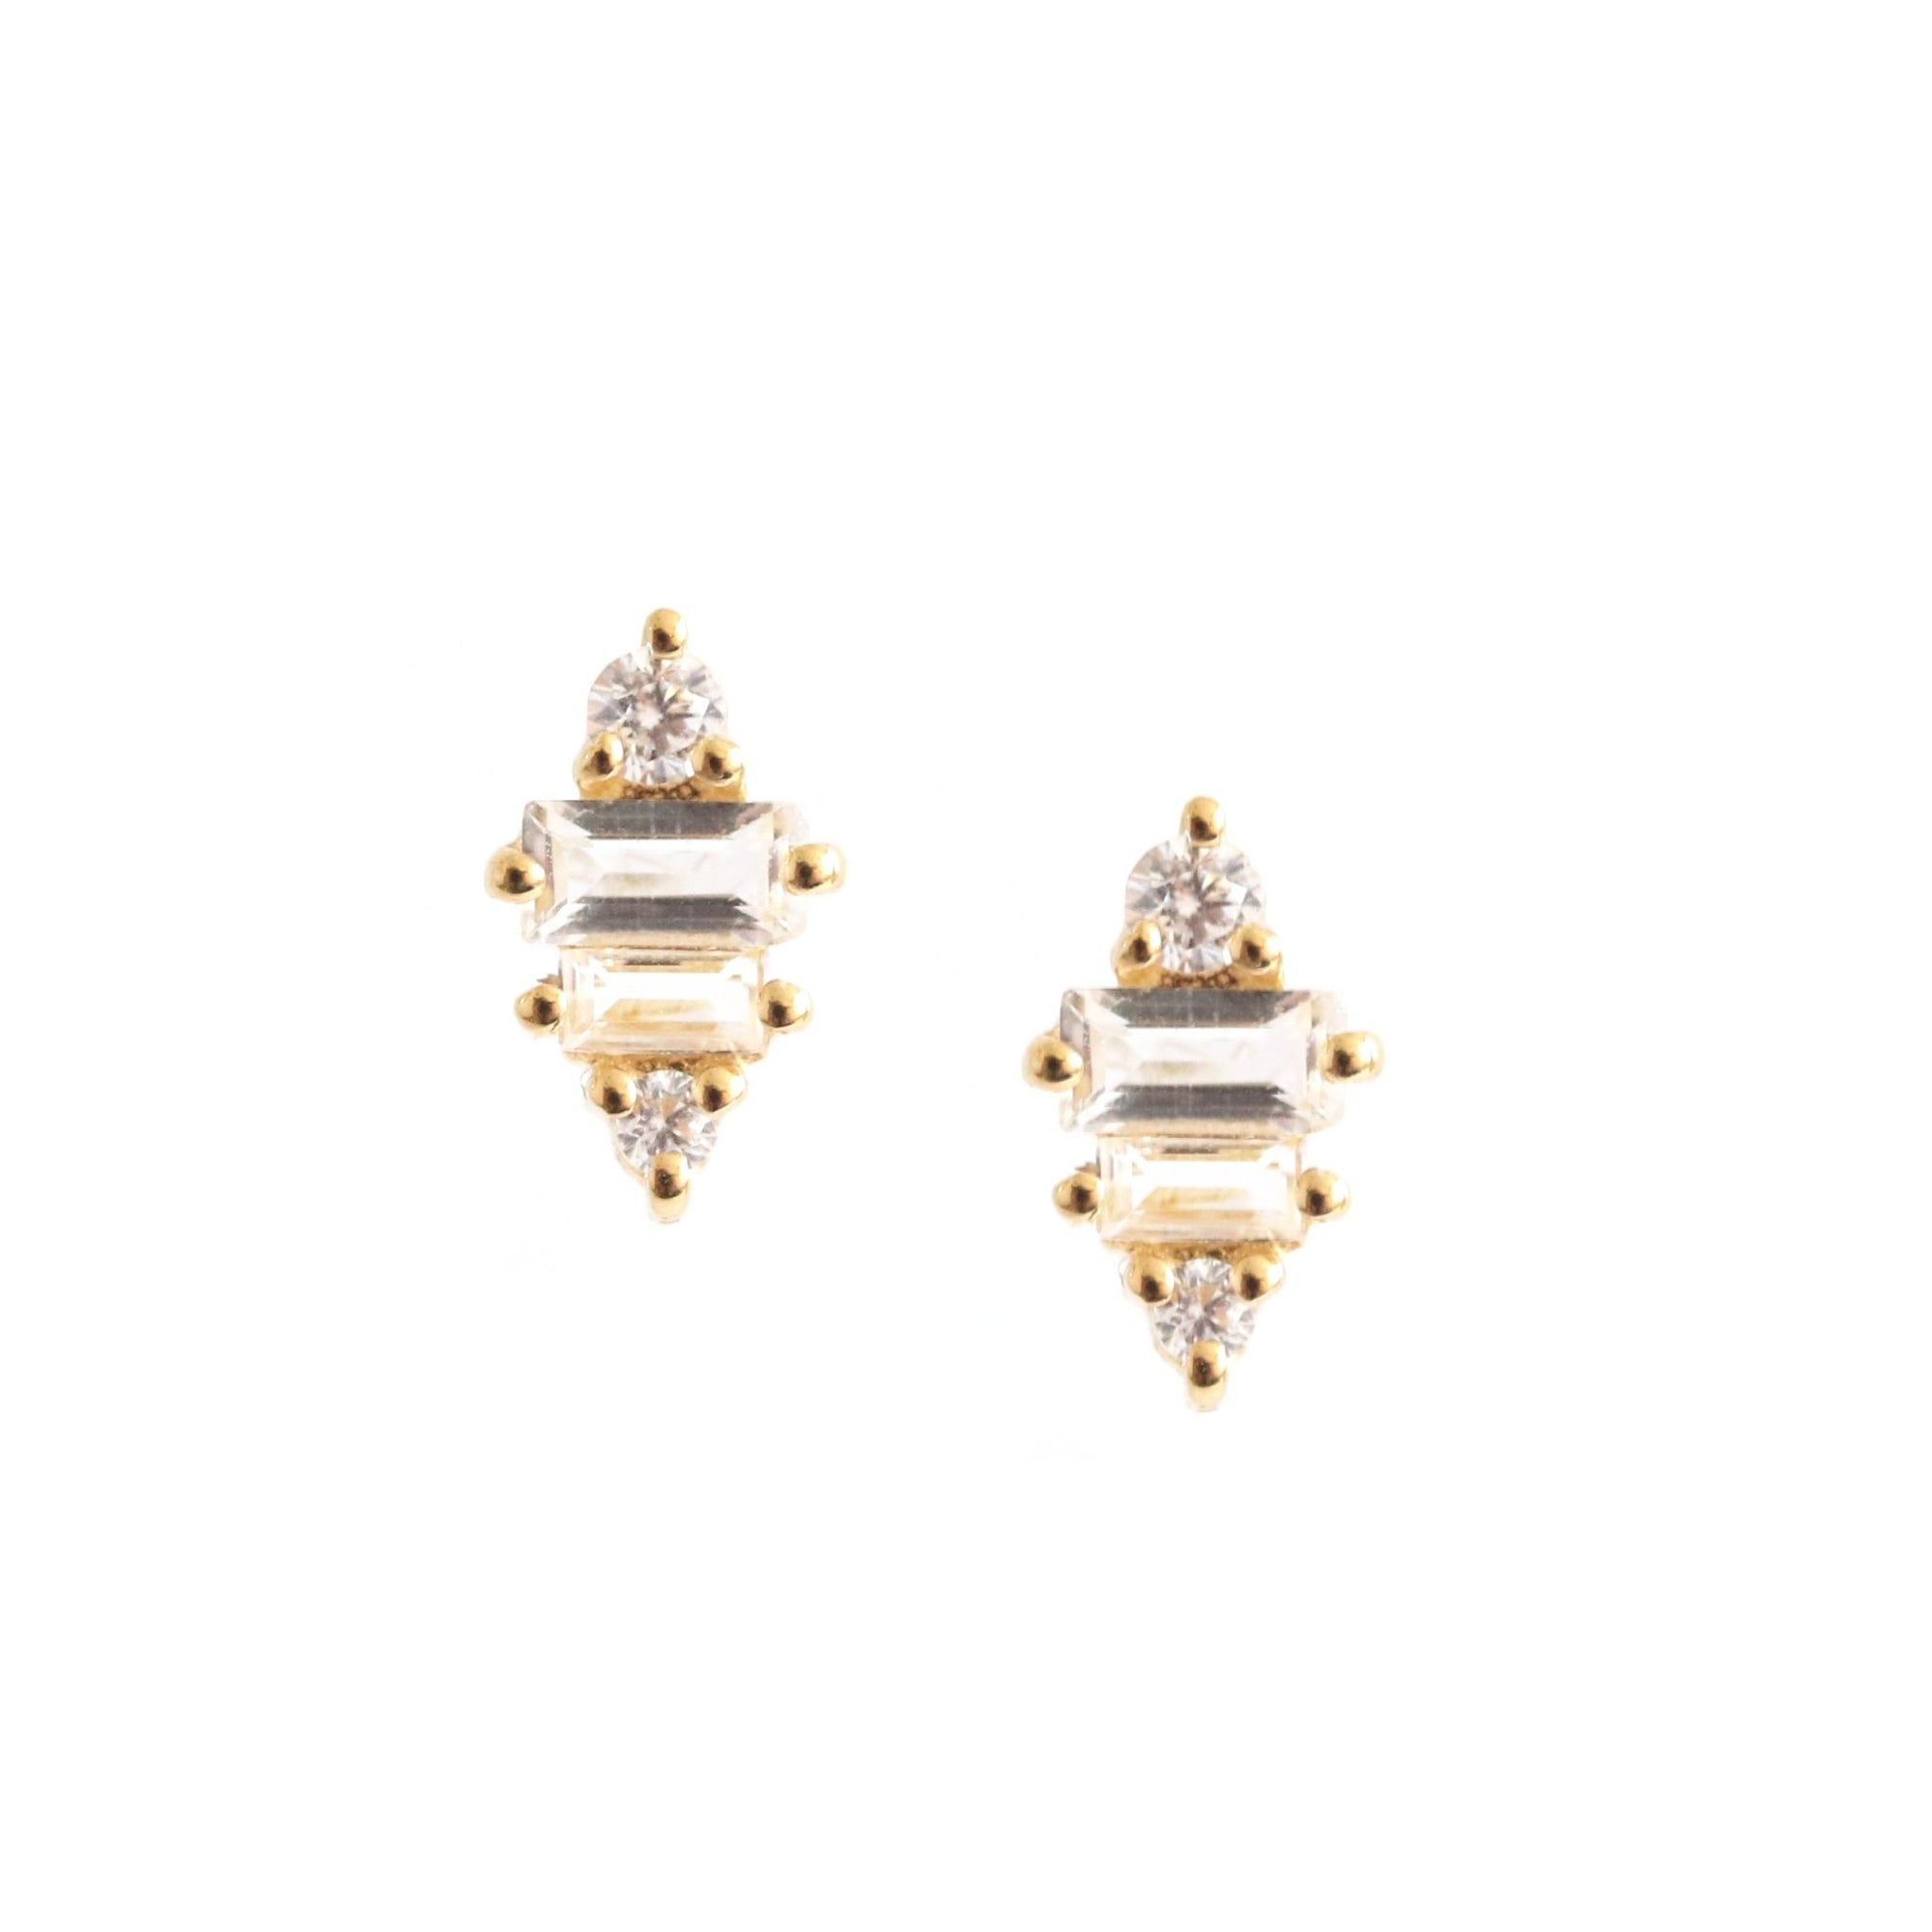 Tiny Loyal Prism Studs - White Topaz, Cubic Zirconia, & Gold - SO PRETTY CARA COTTER